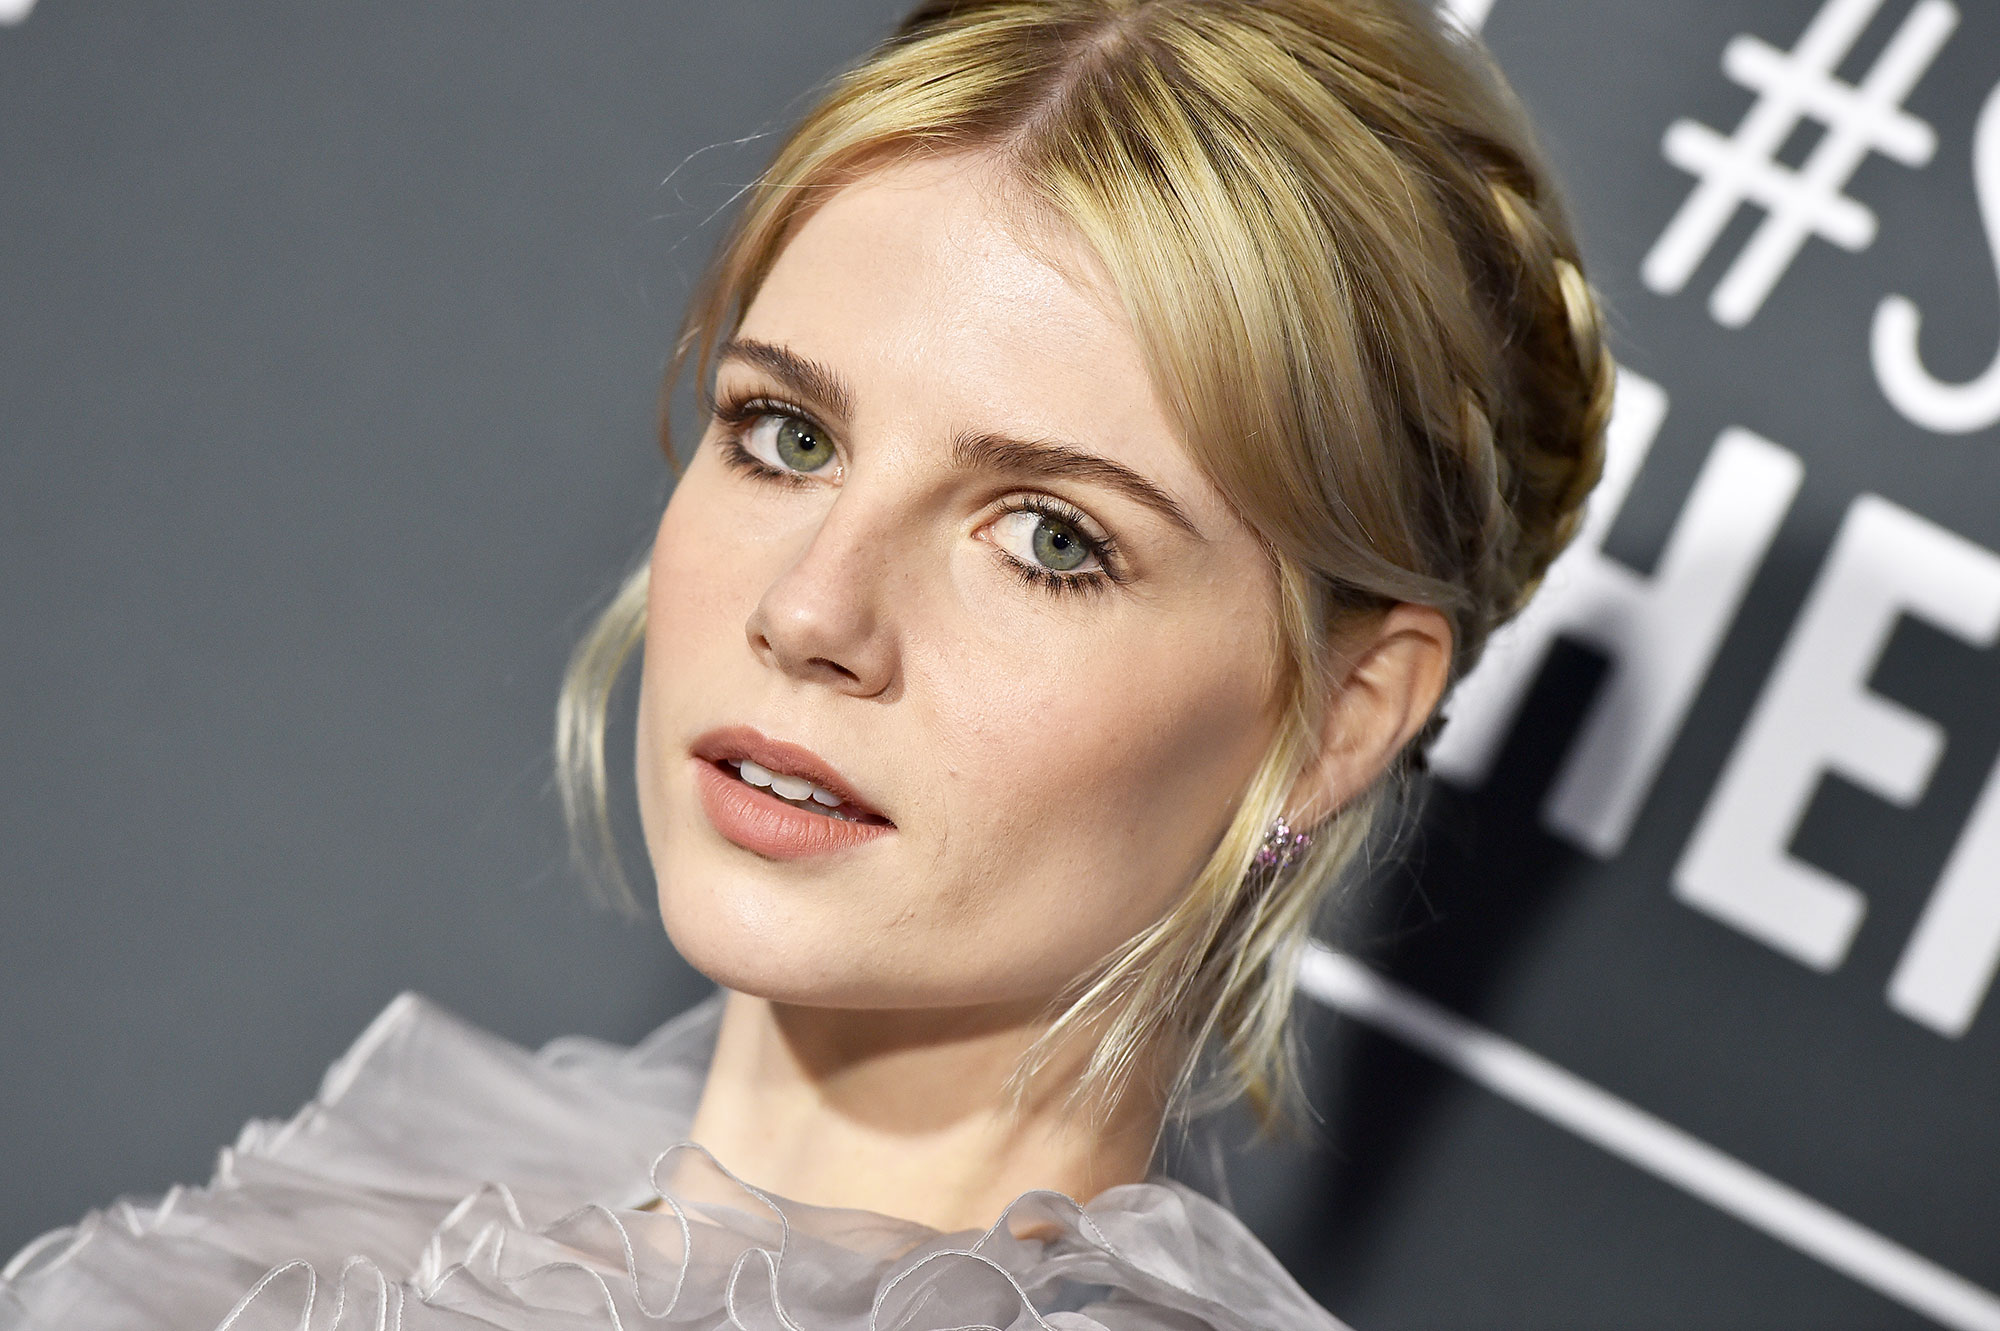 Lucy Boynton Critics' Choice Awards 2019 - With a center-parted updo with mini braids by mane master Jenny Cho and Twiggy-inspired makeup by Kate Lee using Chanel.